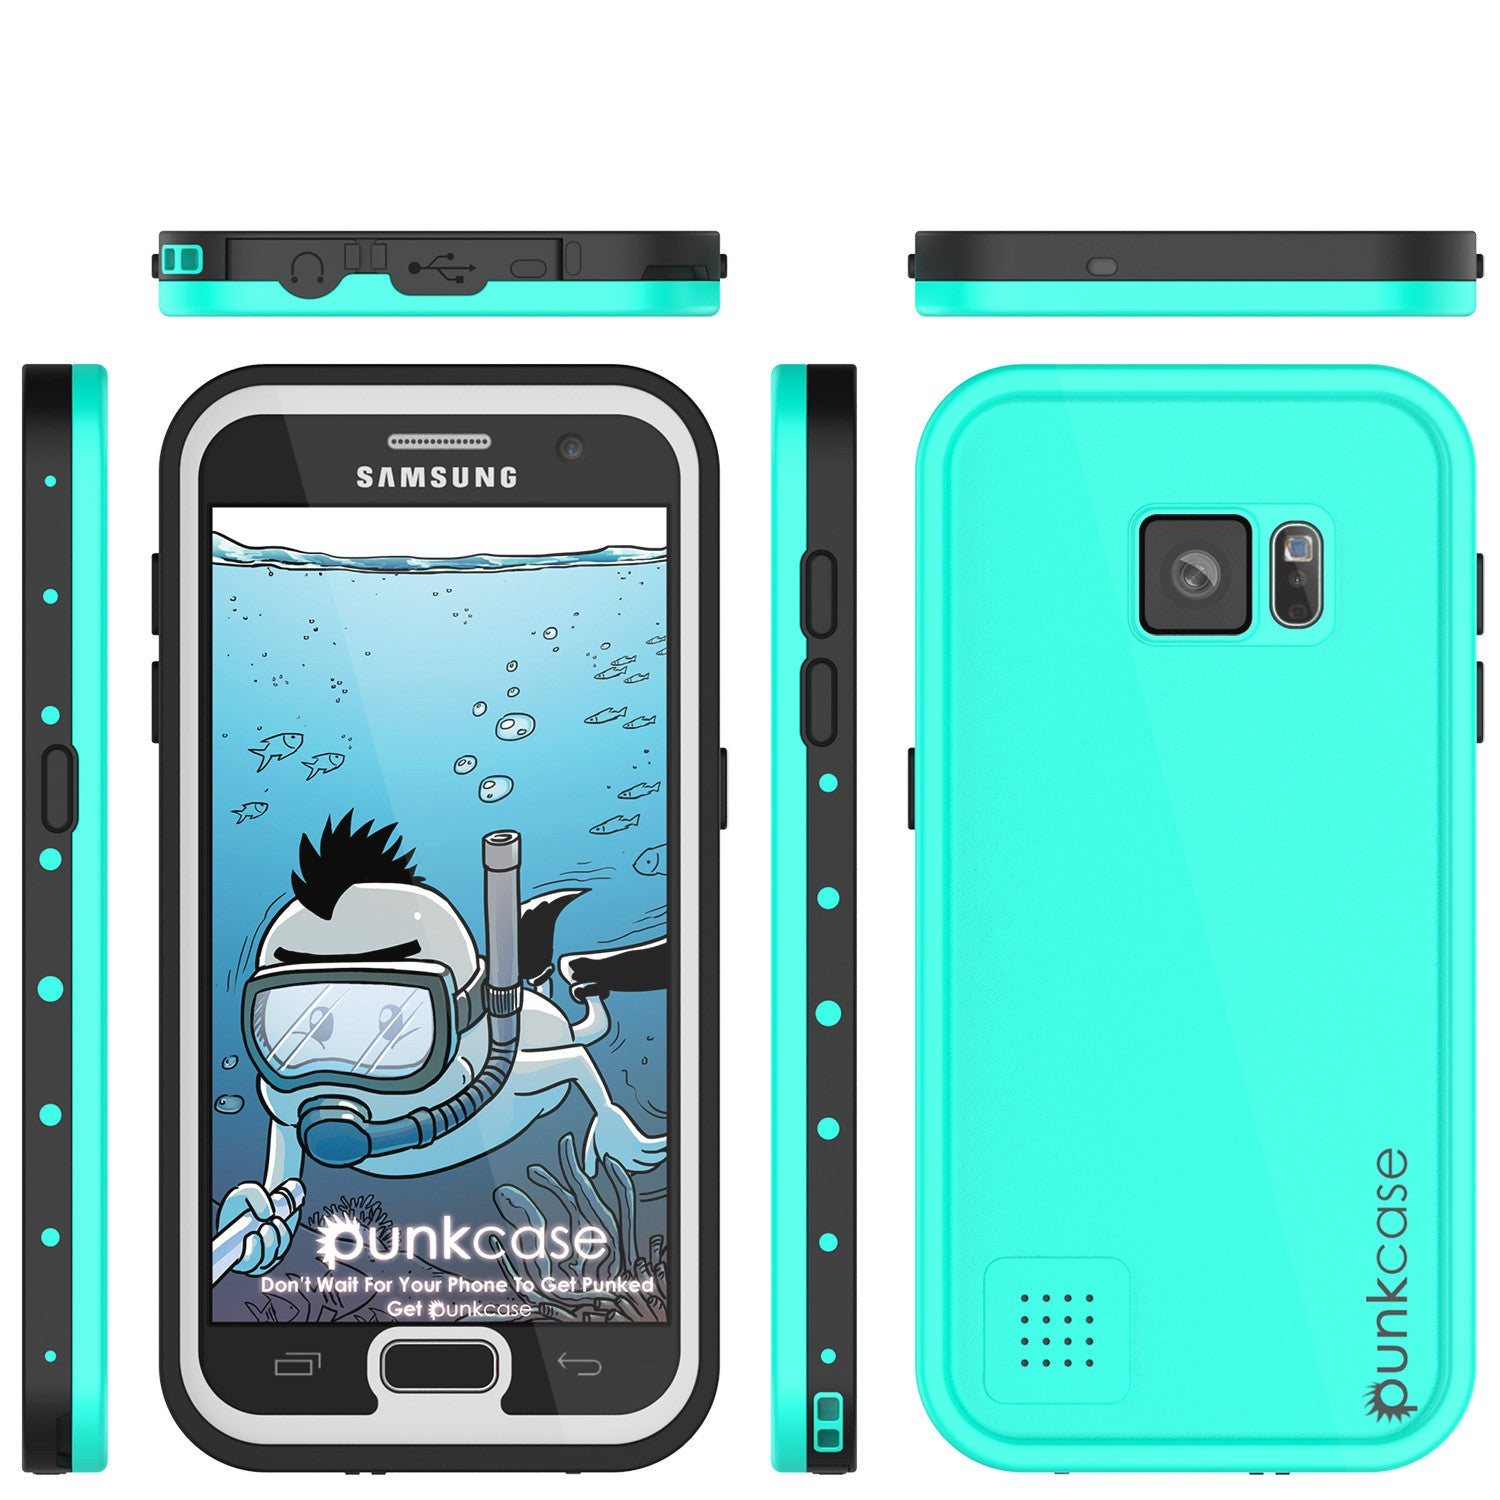 Galaxy S7 Waterproof Case PunkCase StudStar Teal Thin 6.6ft Underwater IP68 Shock/Dirt/Snow Proof